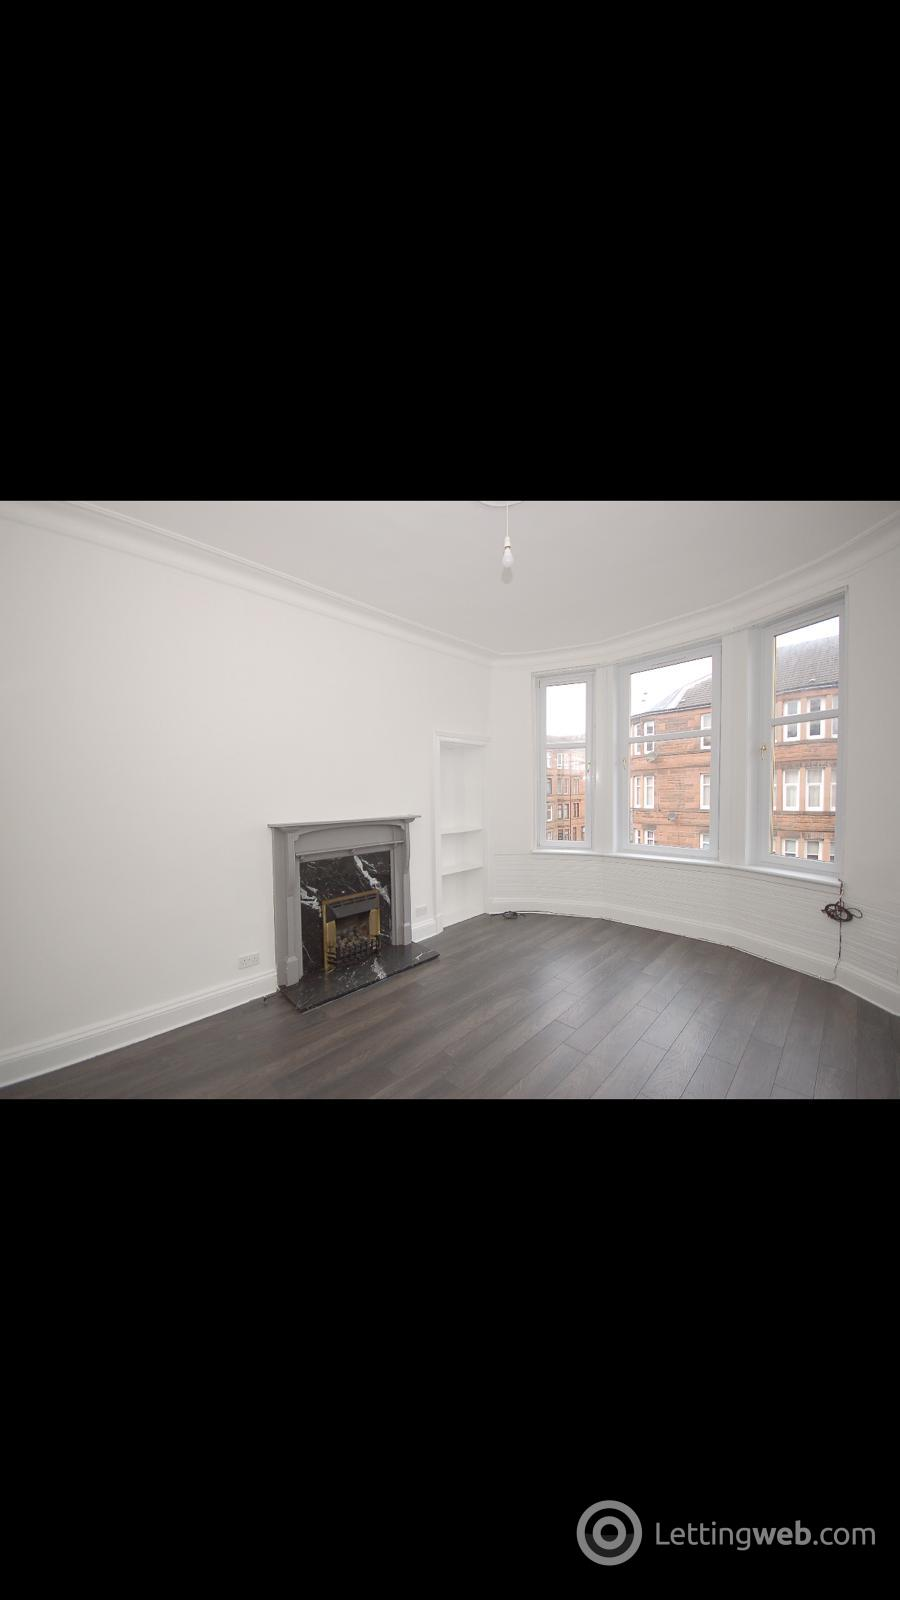 Property to rent in Sinclair drive, Battlefield